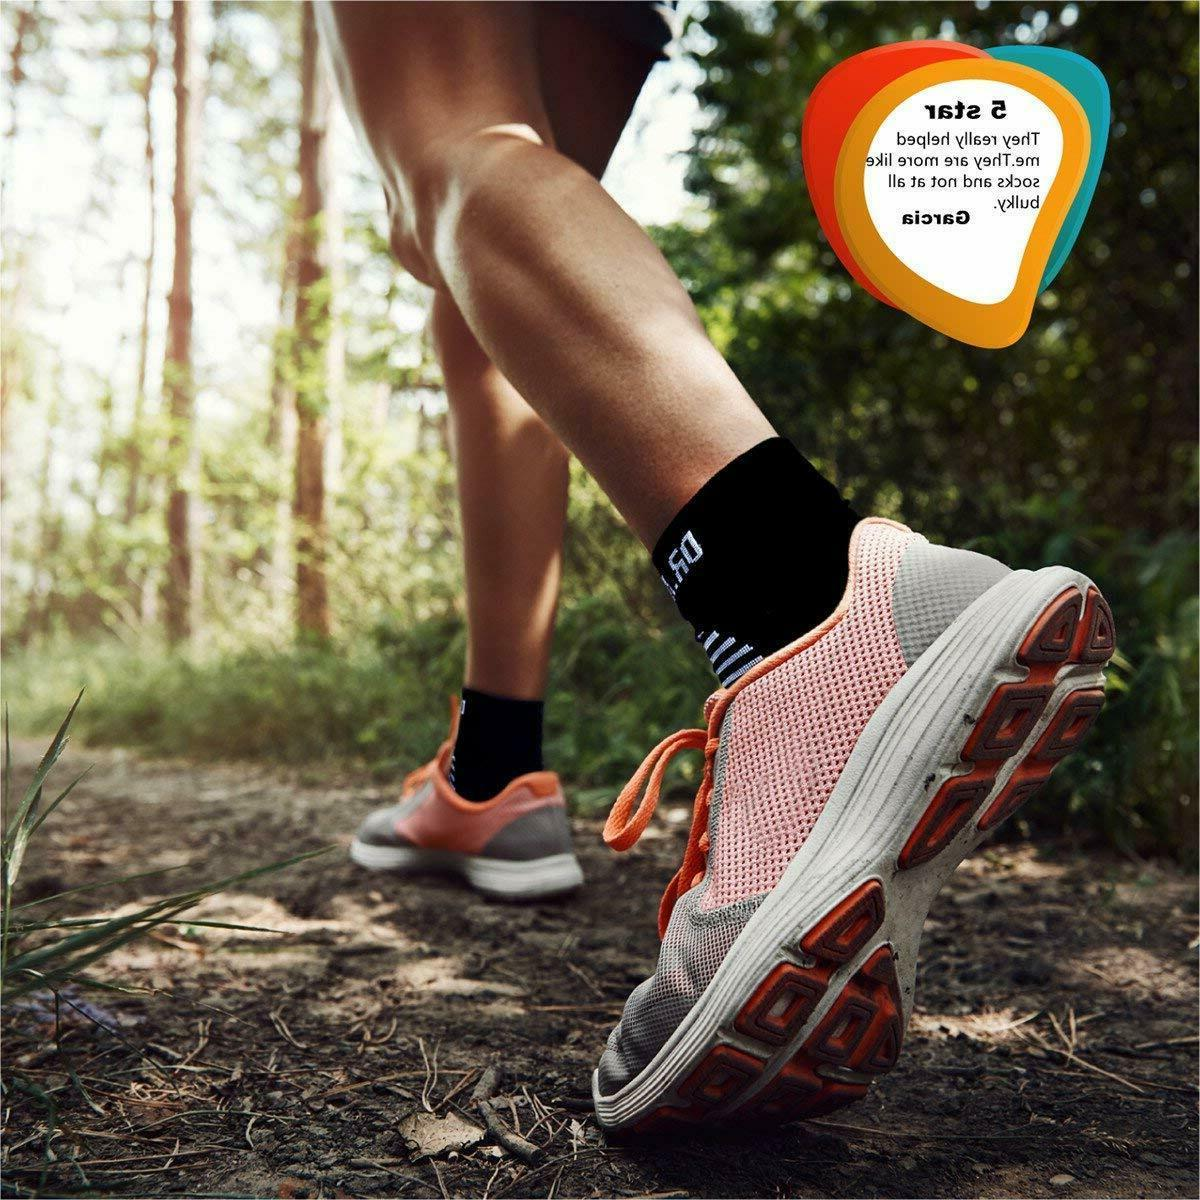 DR.ANISON Foot Plantar Fasciitis Arch Support Ankle Brace